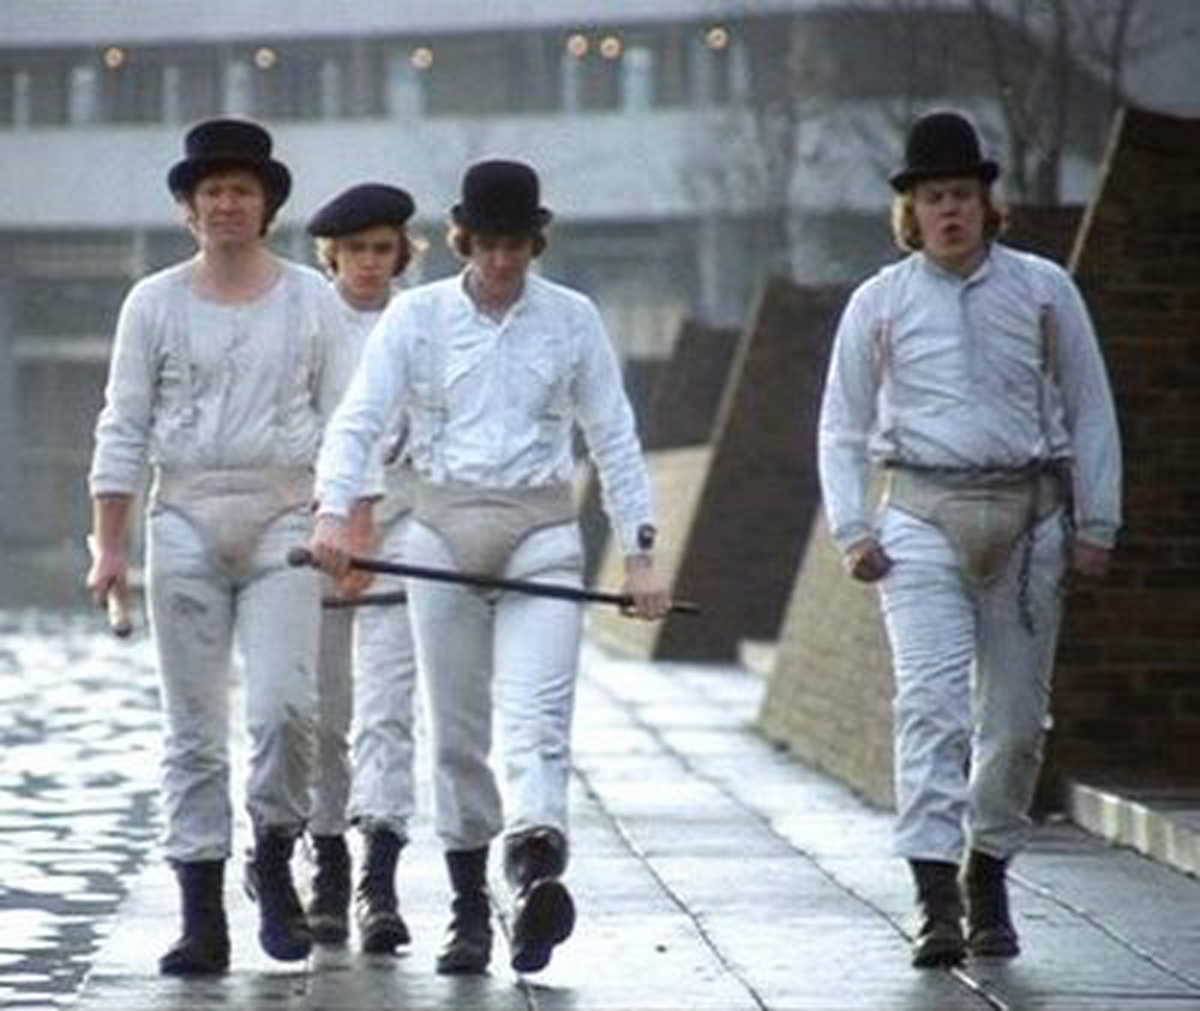 Clockwork orange skinhead